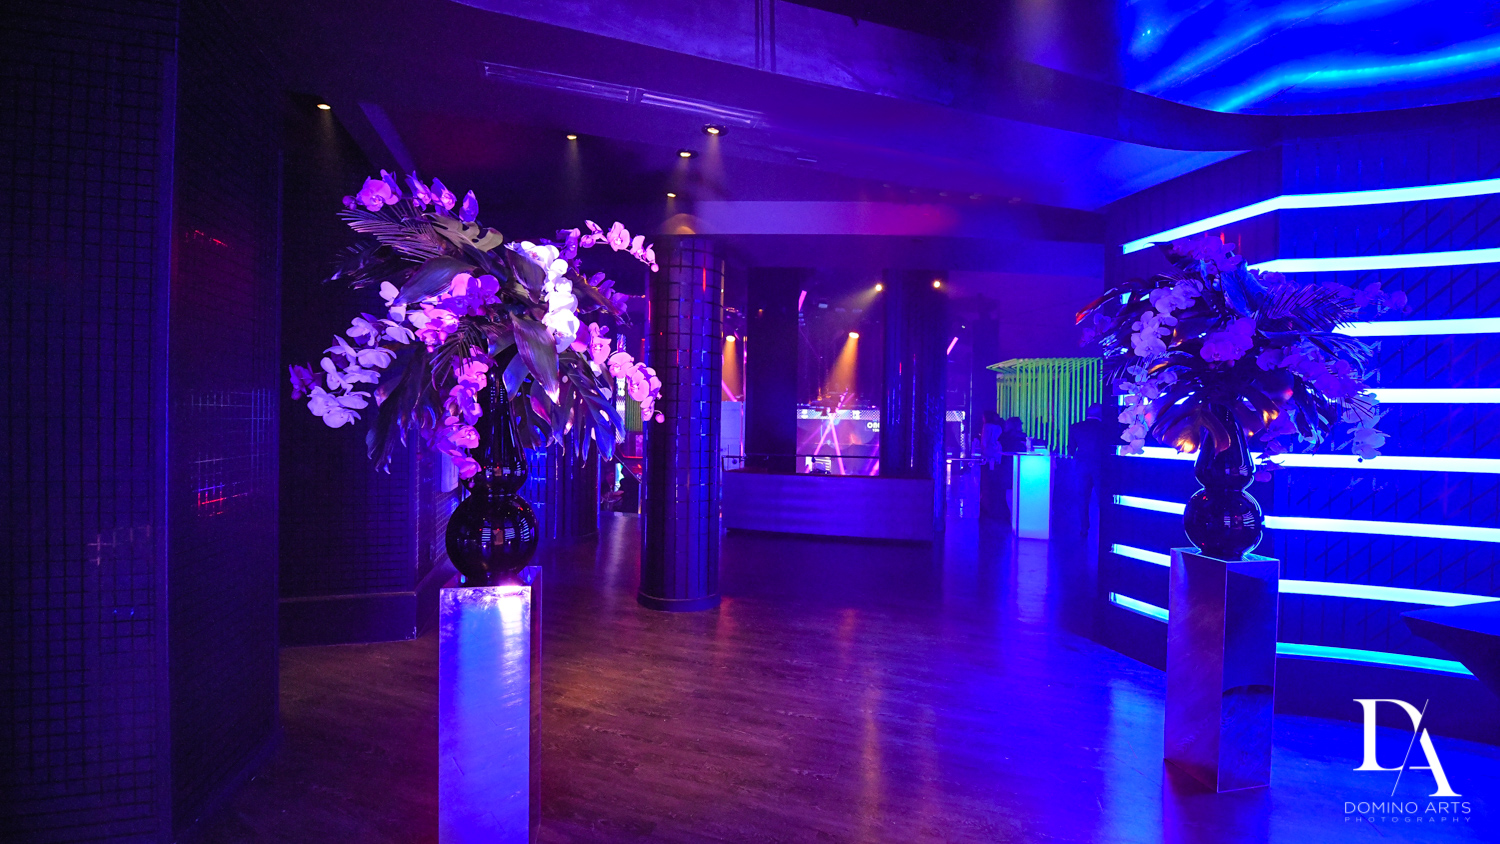 neon decor at Nightclub Bat Mitzvah at LIV in Fontainebleau Miami by Domino Arts Photography